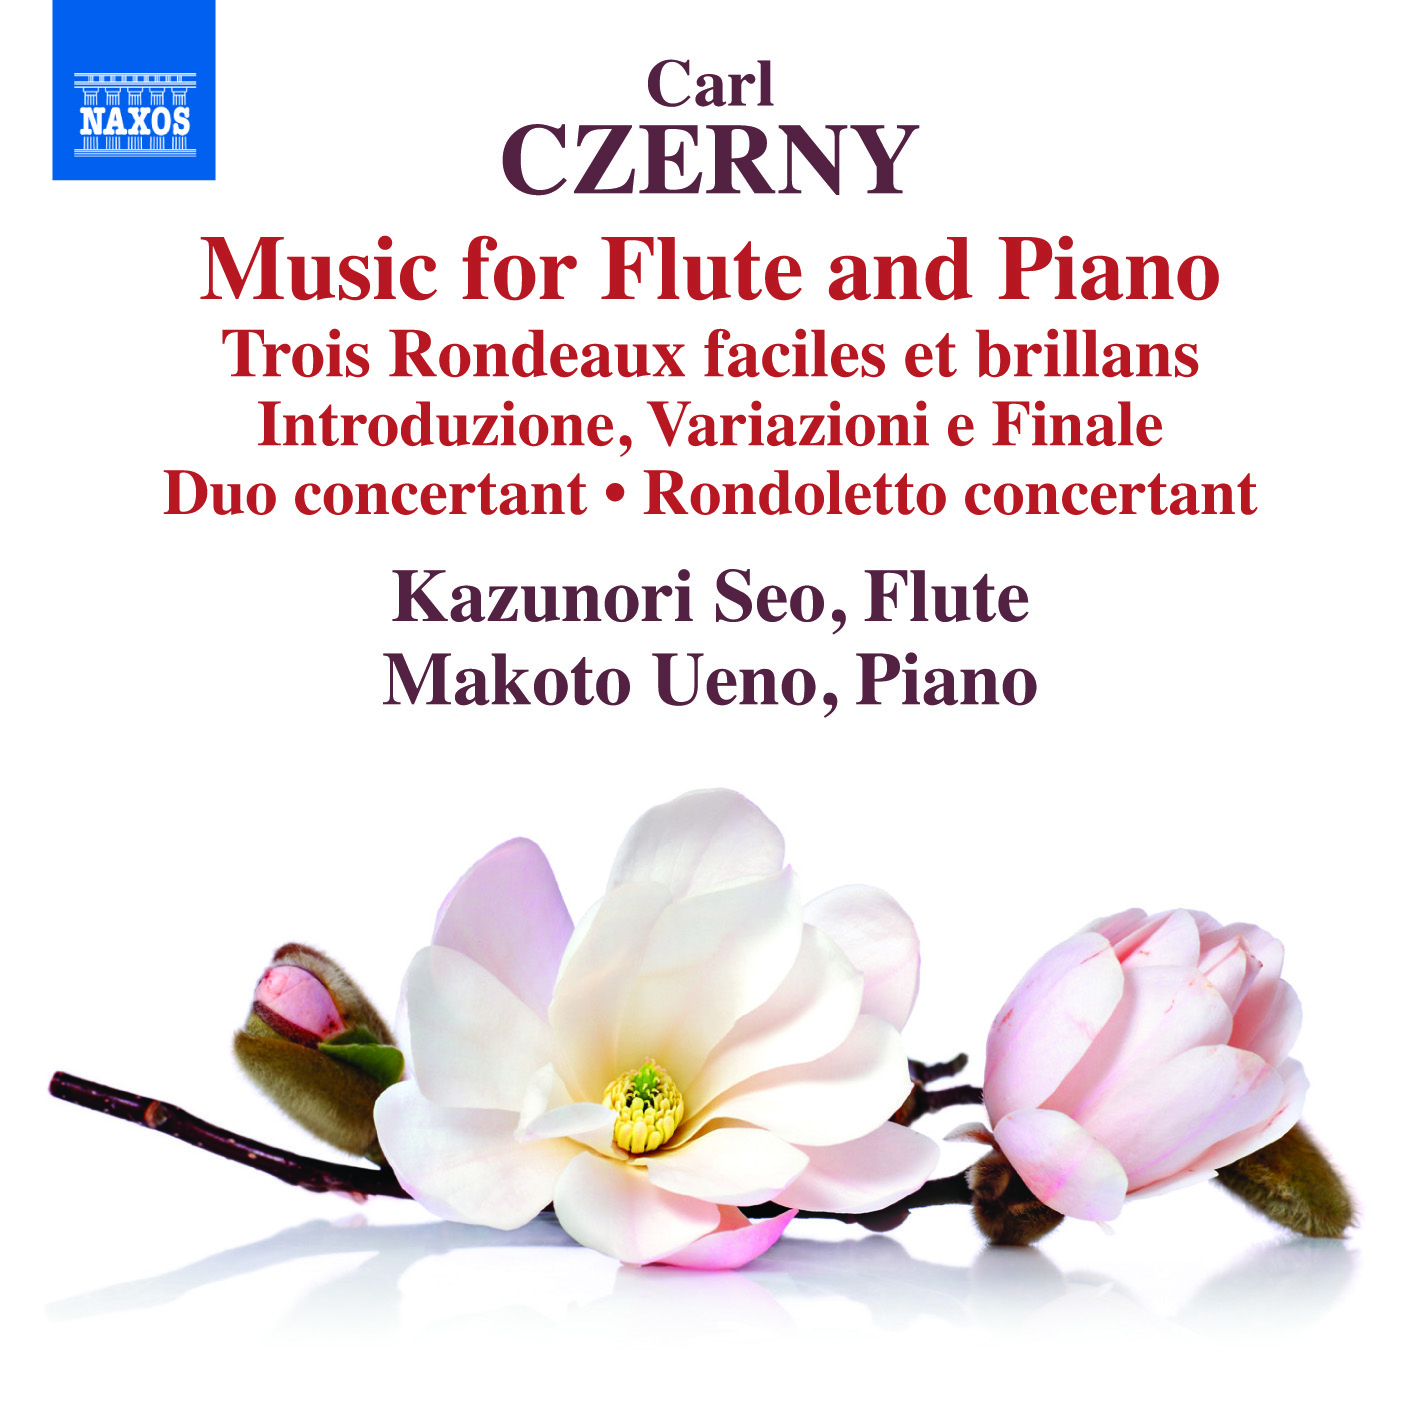 Carl CZERNY : Music for Flute and Piano